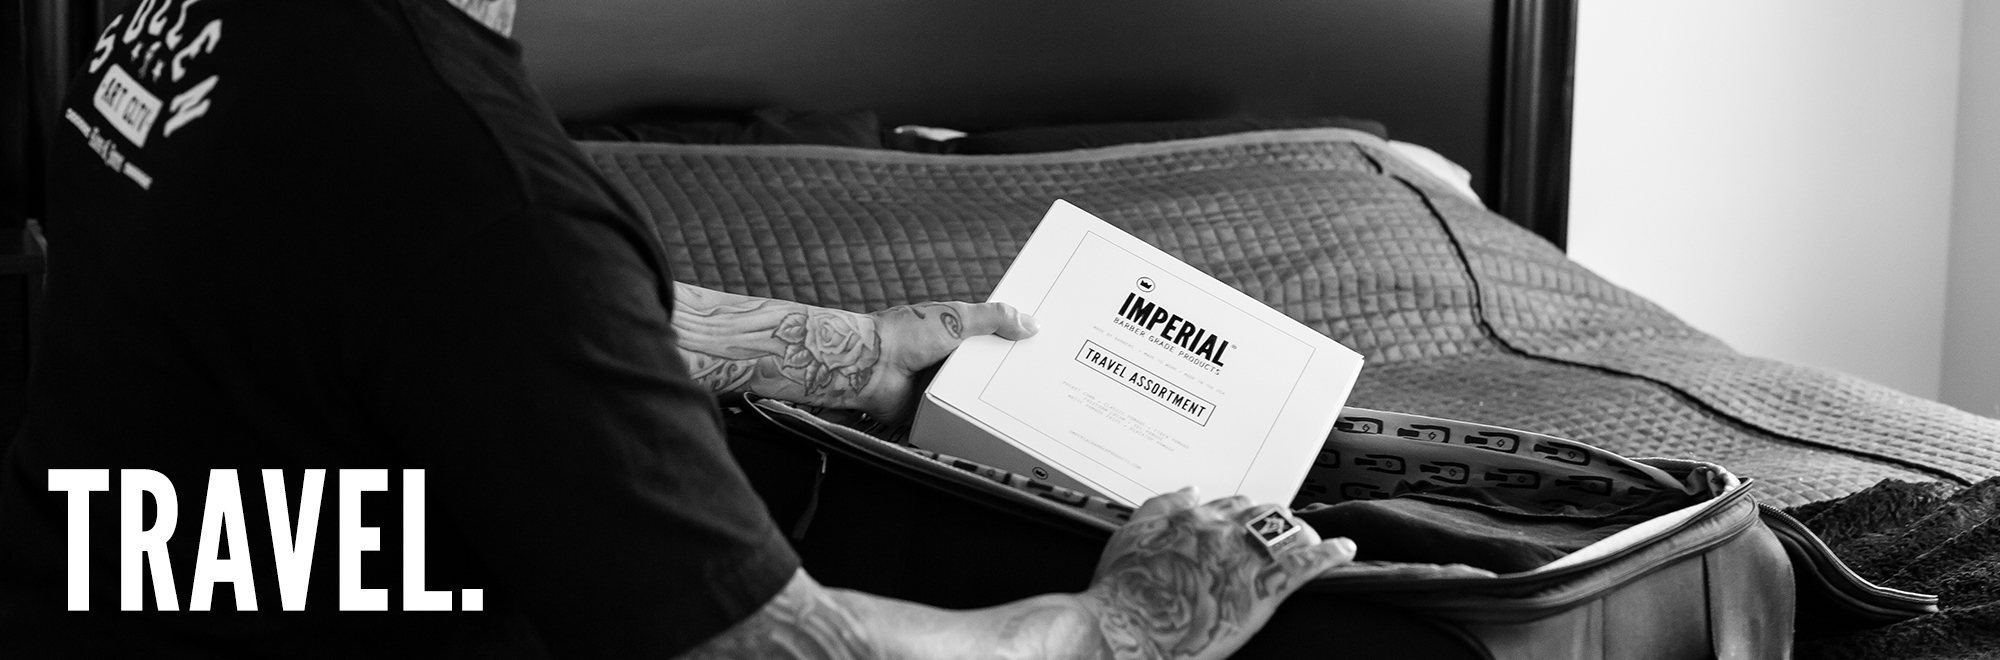 Travel - Imperial Barber Products